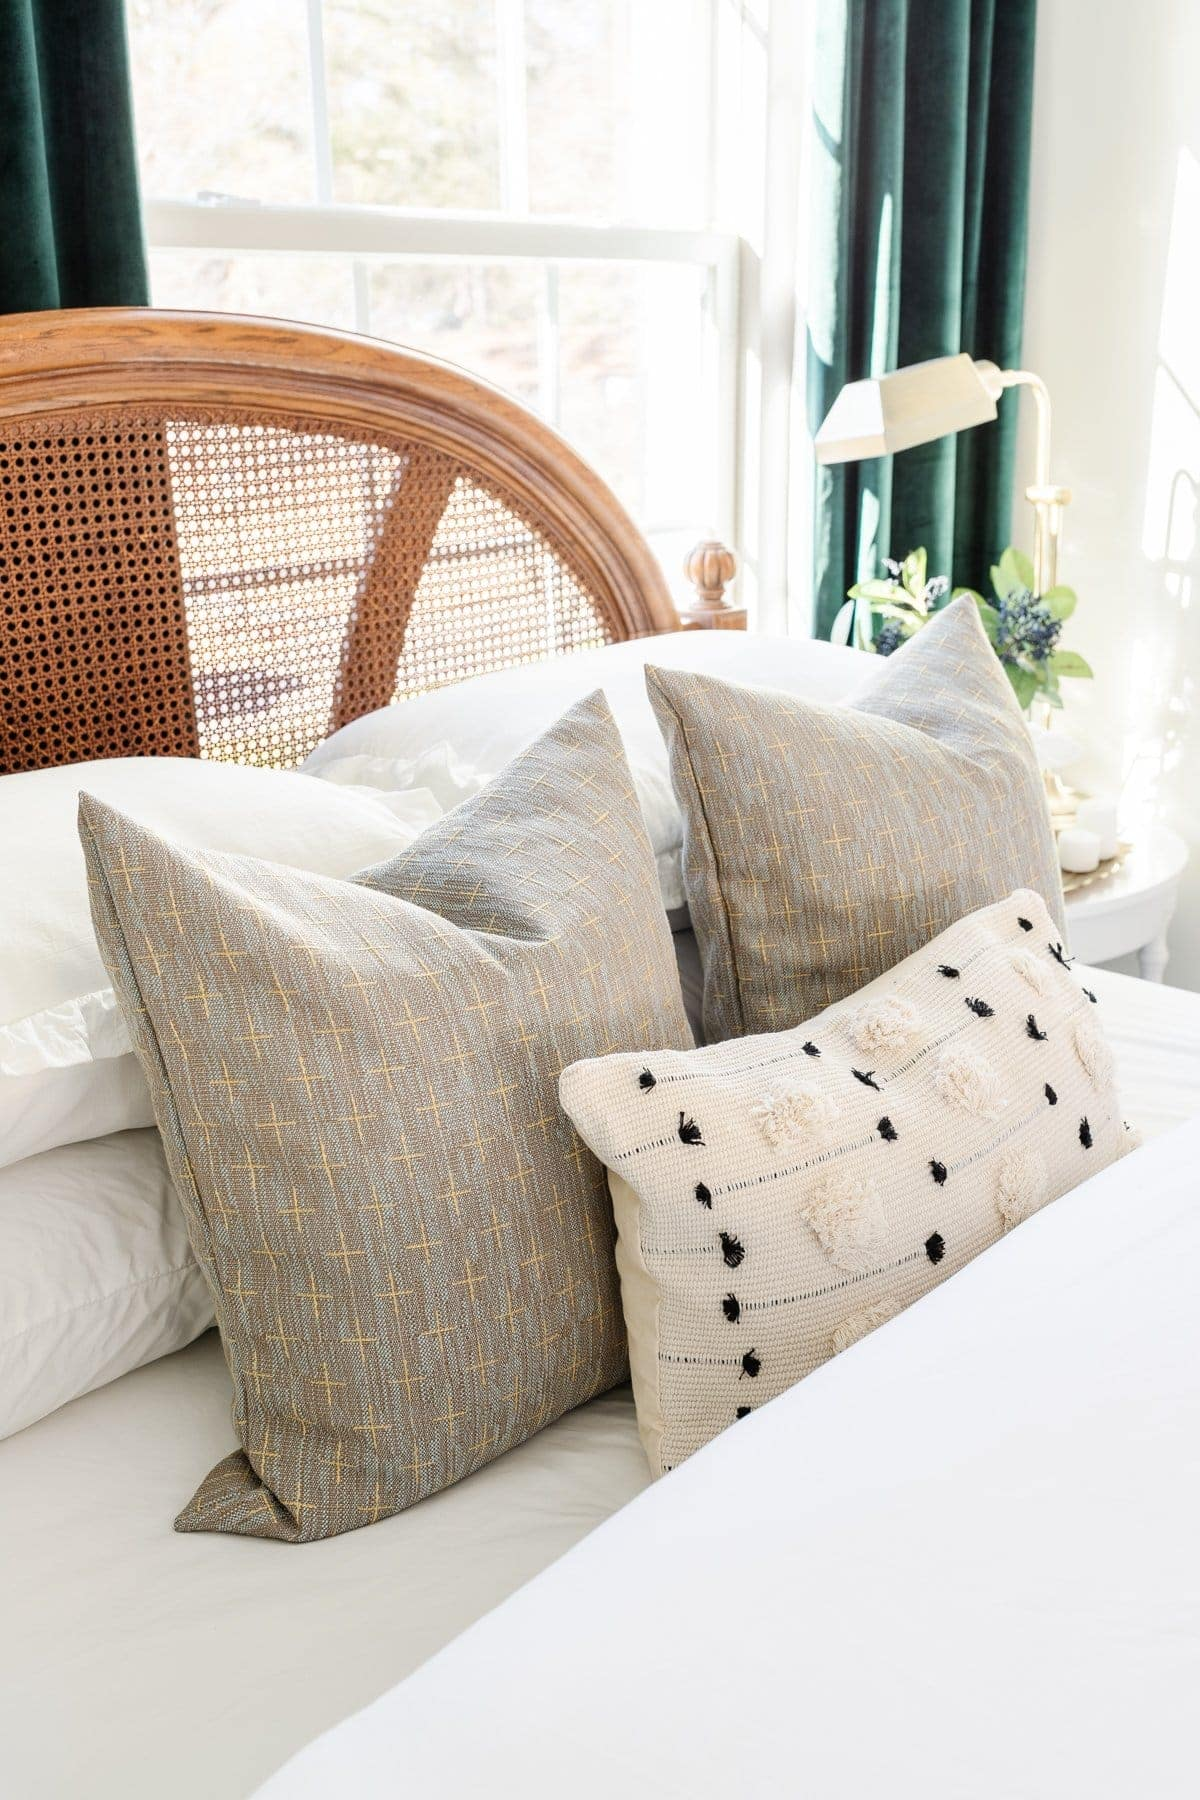 throw pillows on a guest bed